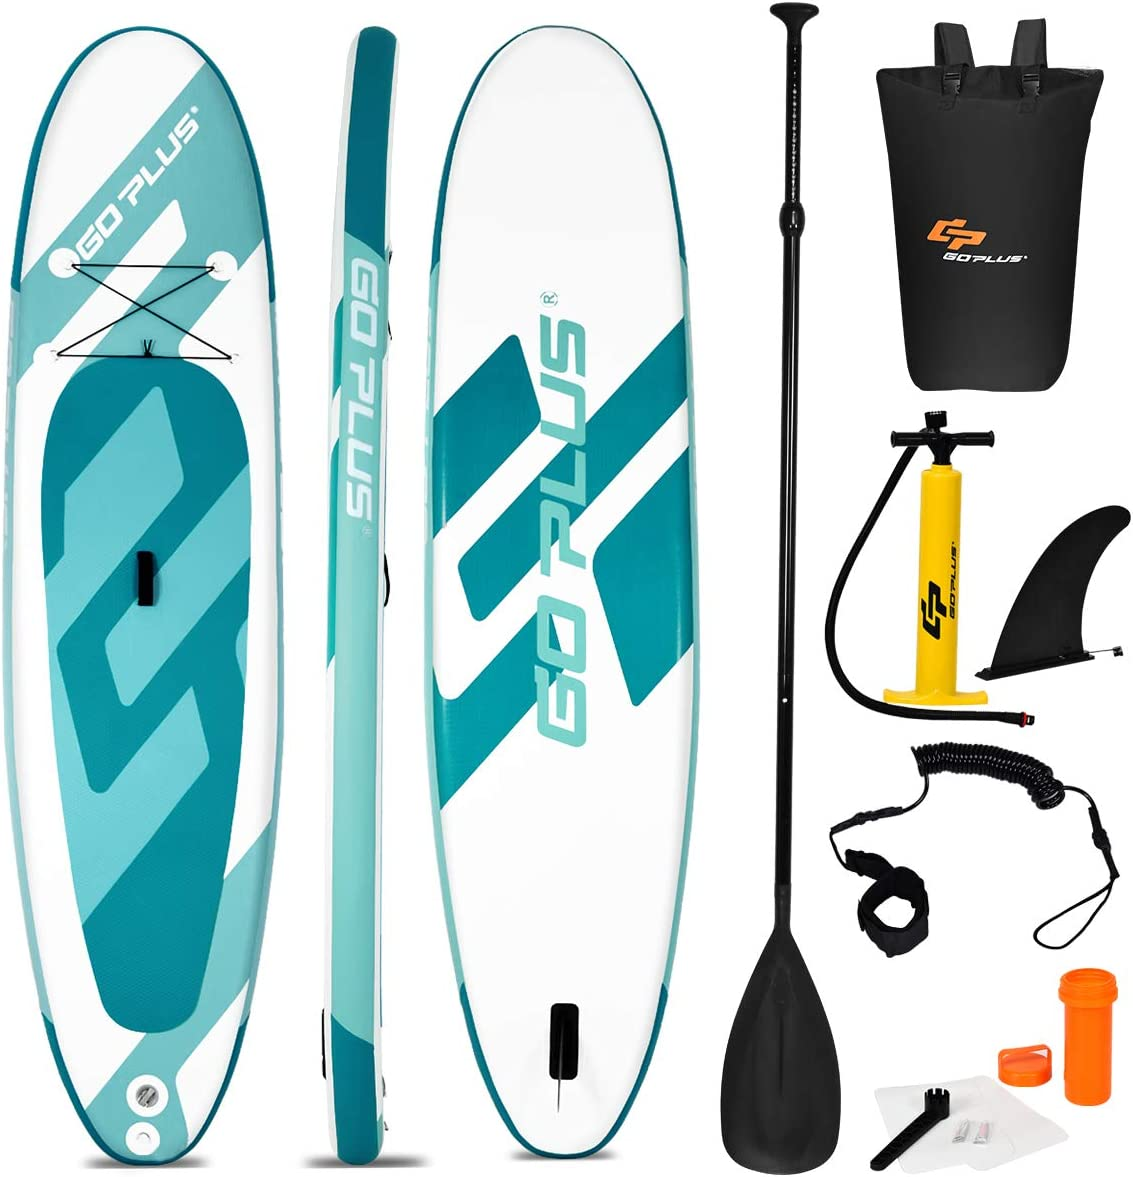 Goplus Inflatable Stand Up Paddle Board, 6 Thick SUP with Accessory Pack, Adjustable Paddle, Carry Bag, Bottom Fin, Hand Pump, Leash and Repair Kit